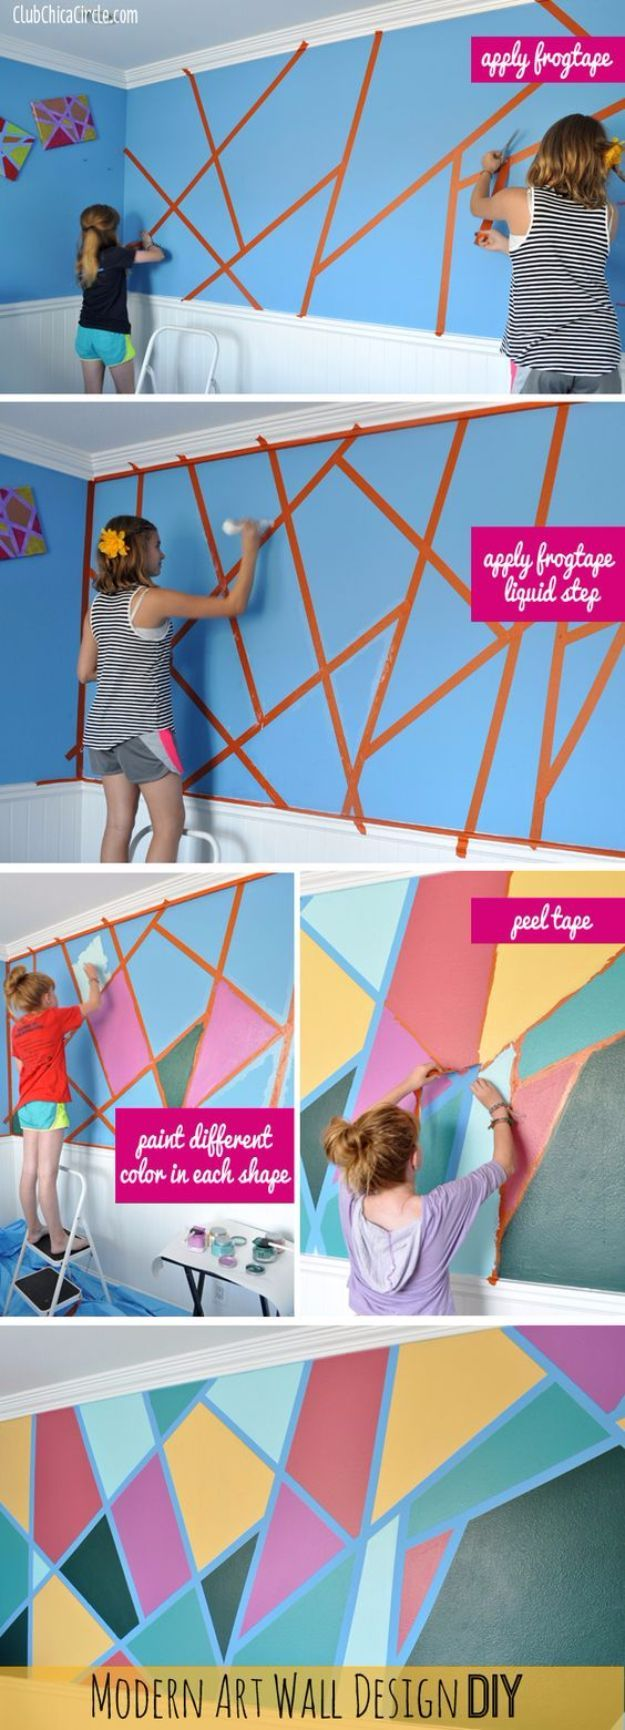 DIY Ideas for Painting Walls - Modern Art Wall Design DIY - Cool Ways To Paint…